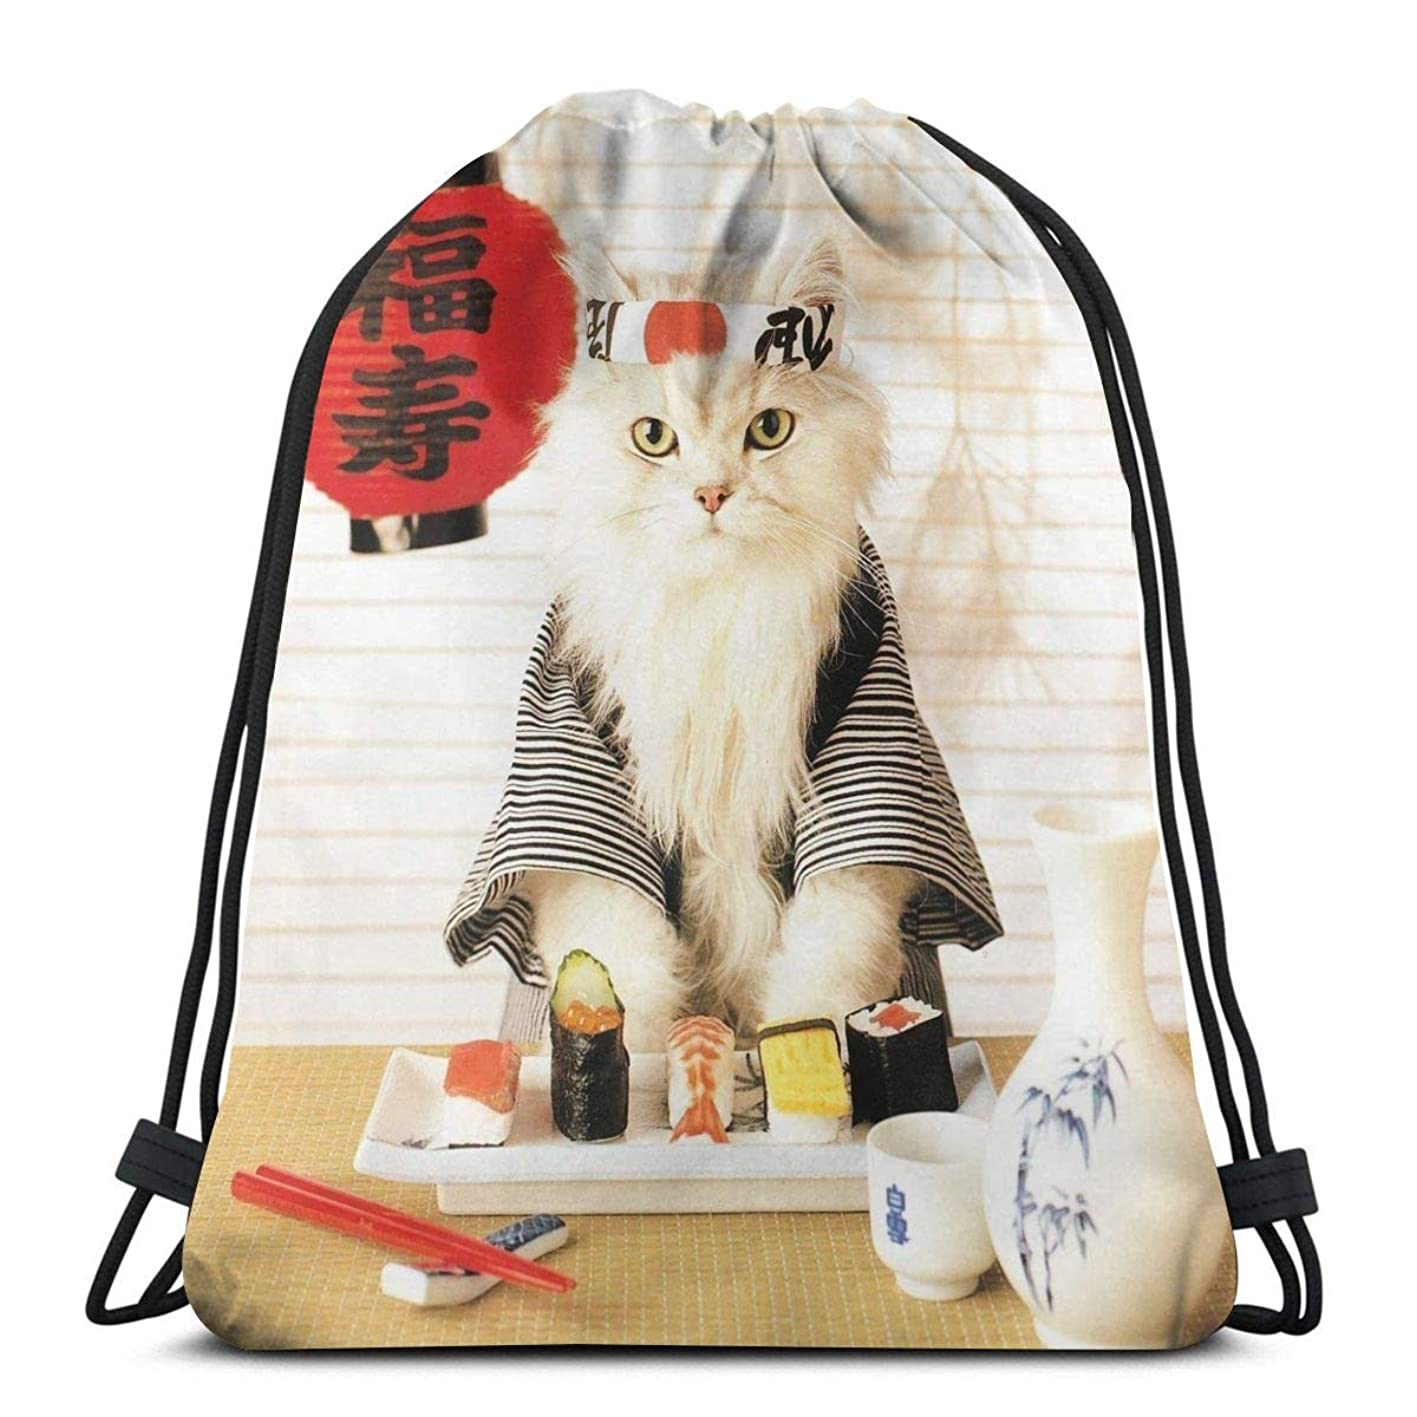 Sushi Cat Japanese Cute Funny Kitten Unisex Drawstring Beam Port Bag,Fashion Gym Outdoor Sports Portable Travel Backpack Dust Storage Shoulders Bags xoeocamitzd835